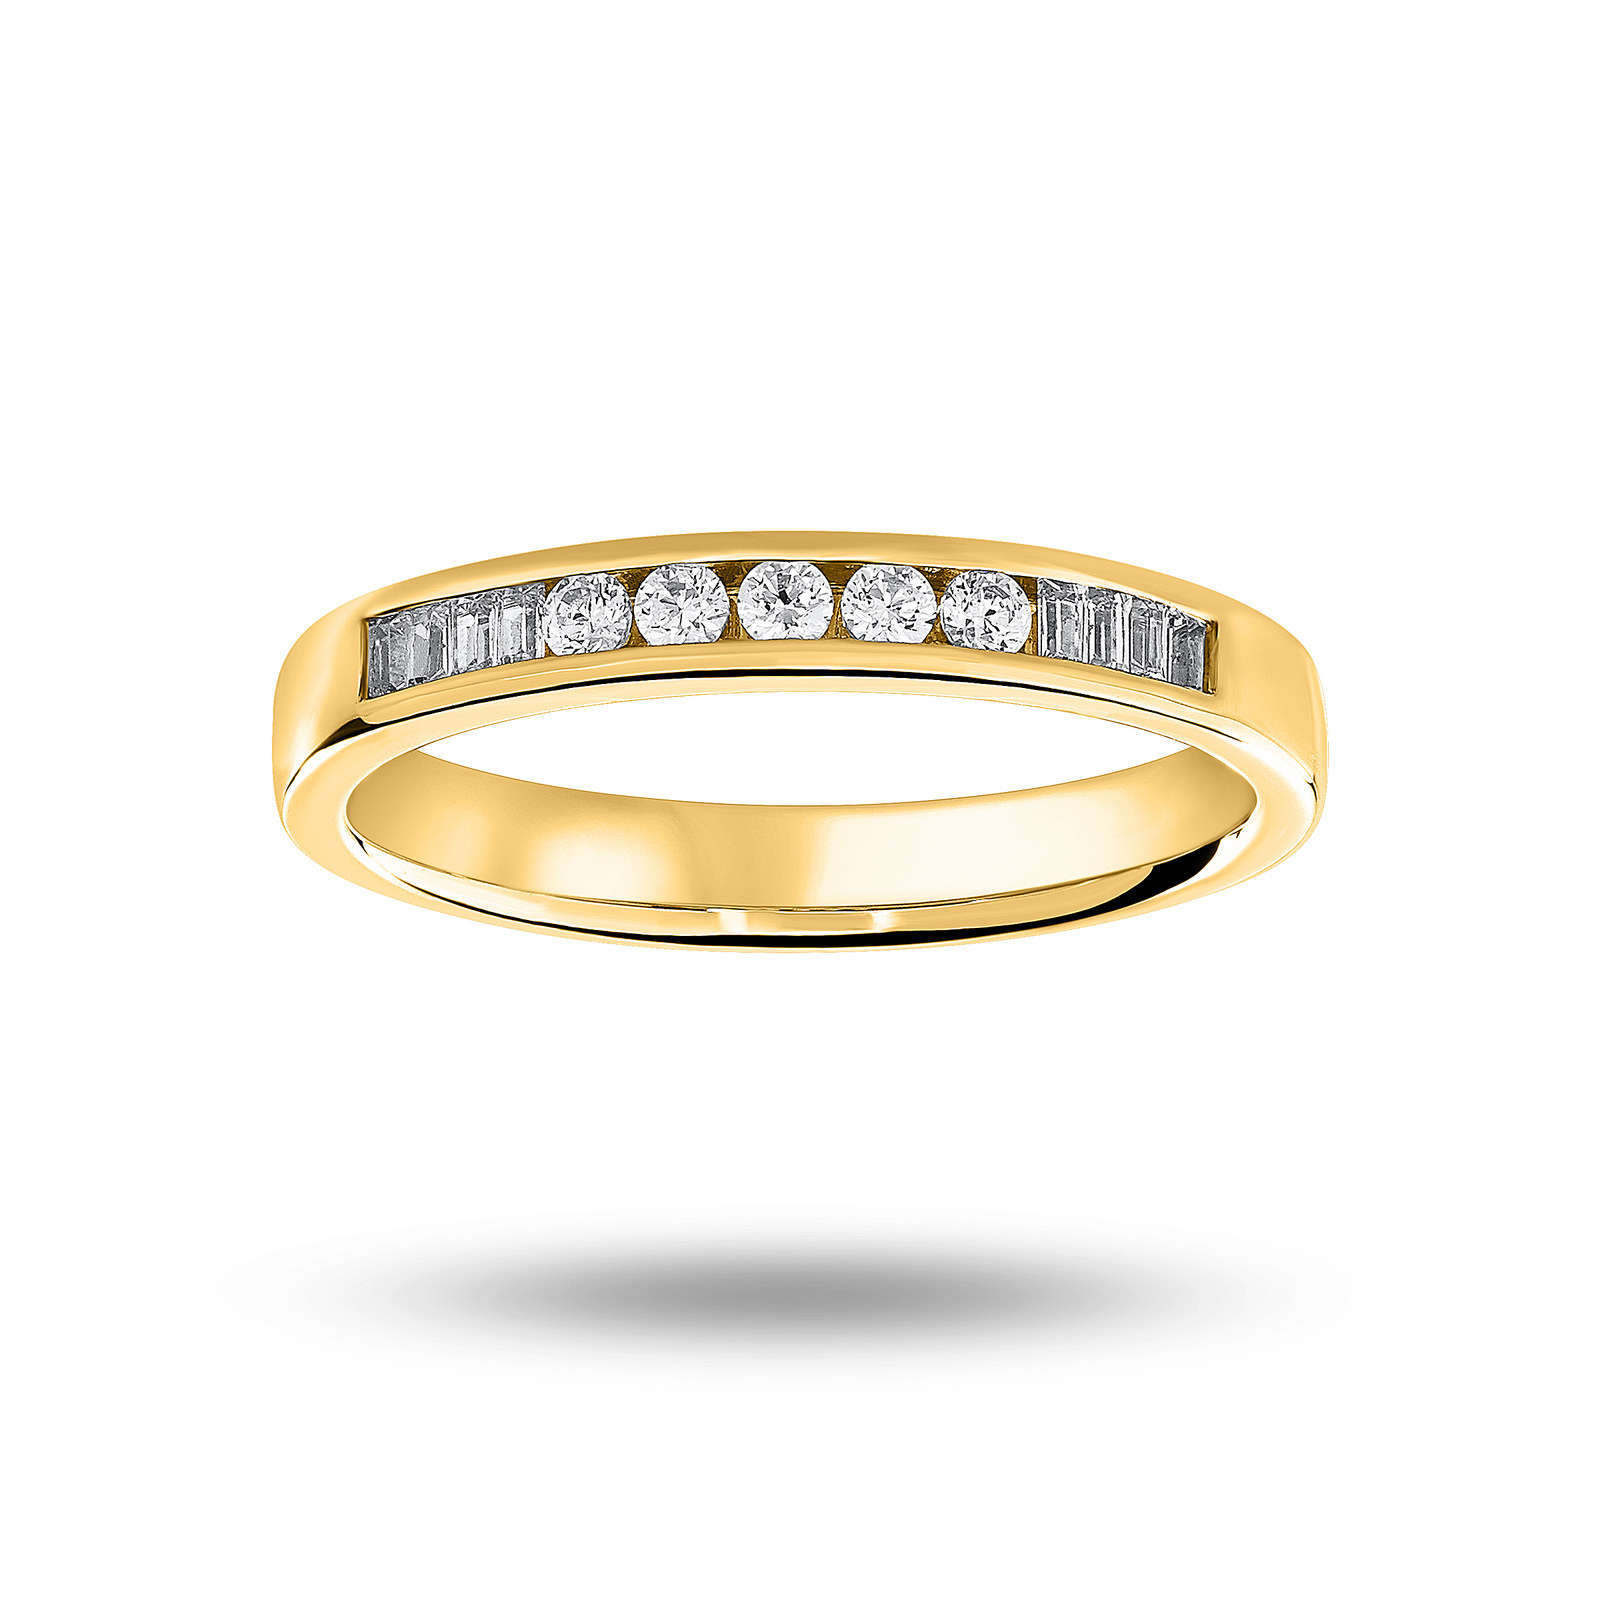 18 Carat Yellow Gold 0.20 Carat Brilliant Cut and Baguette Channel Set Half Eternity Ring